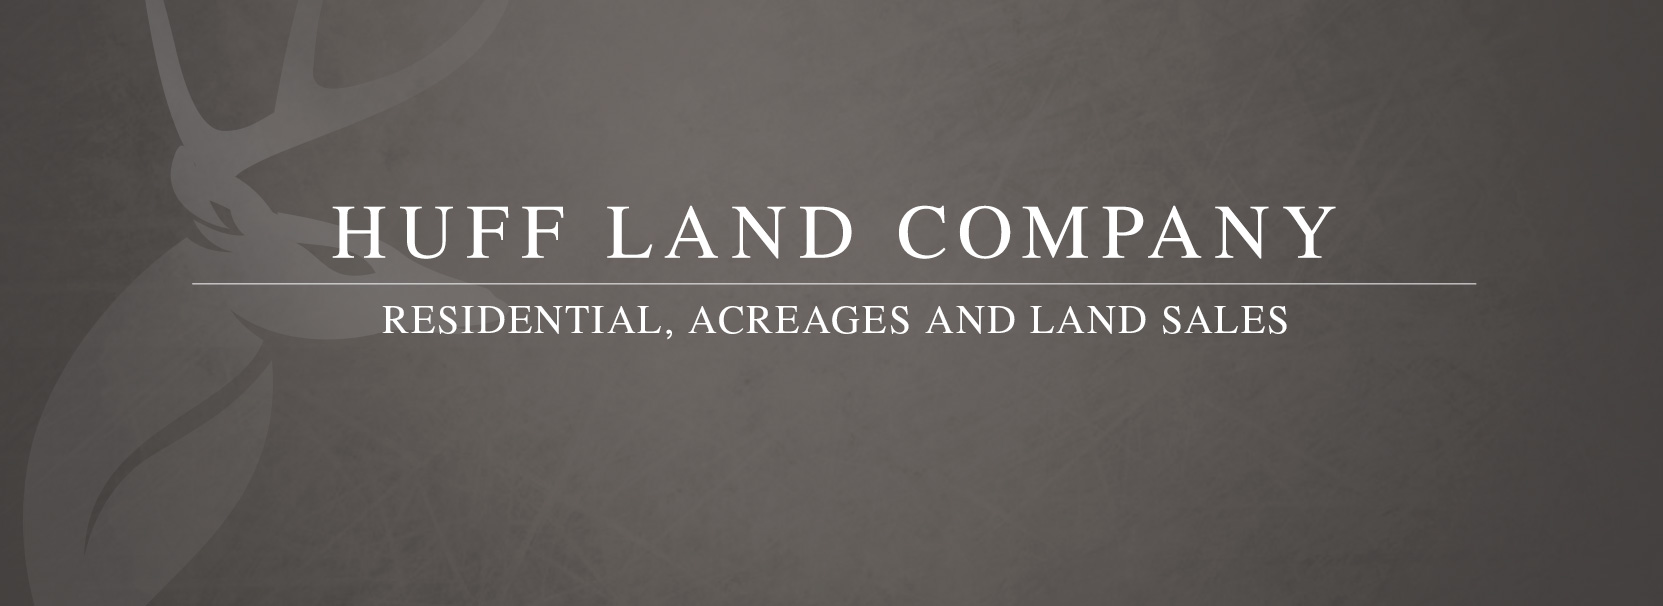 Huff Land Company | Residential, Acreages & Land Sales